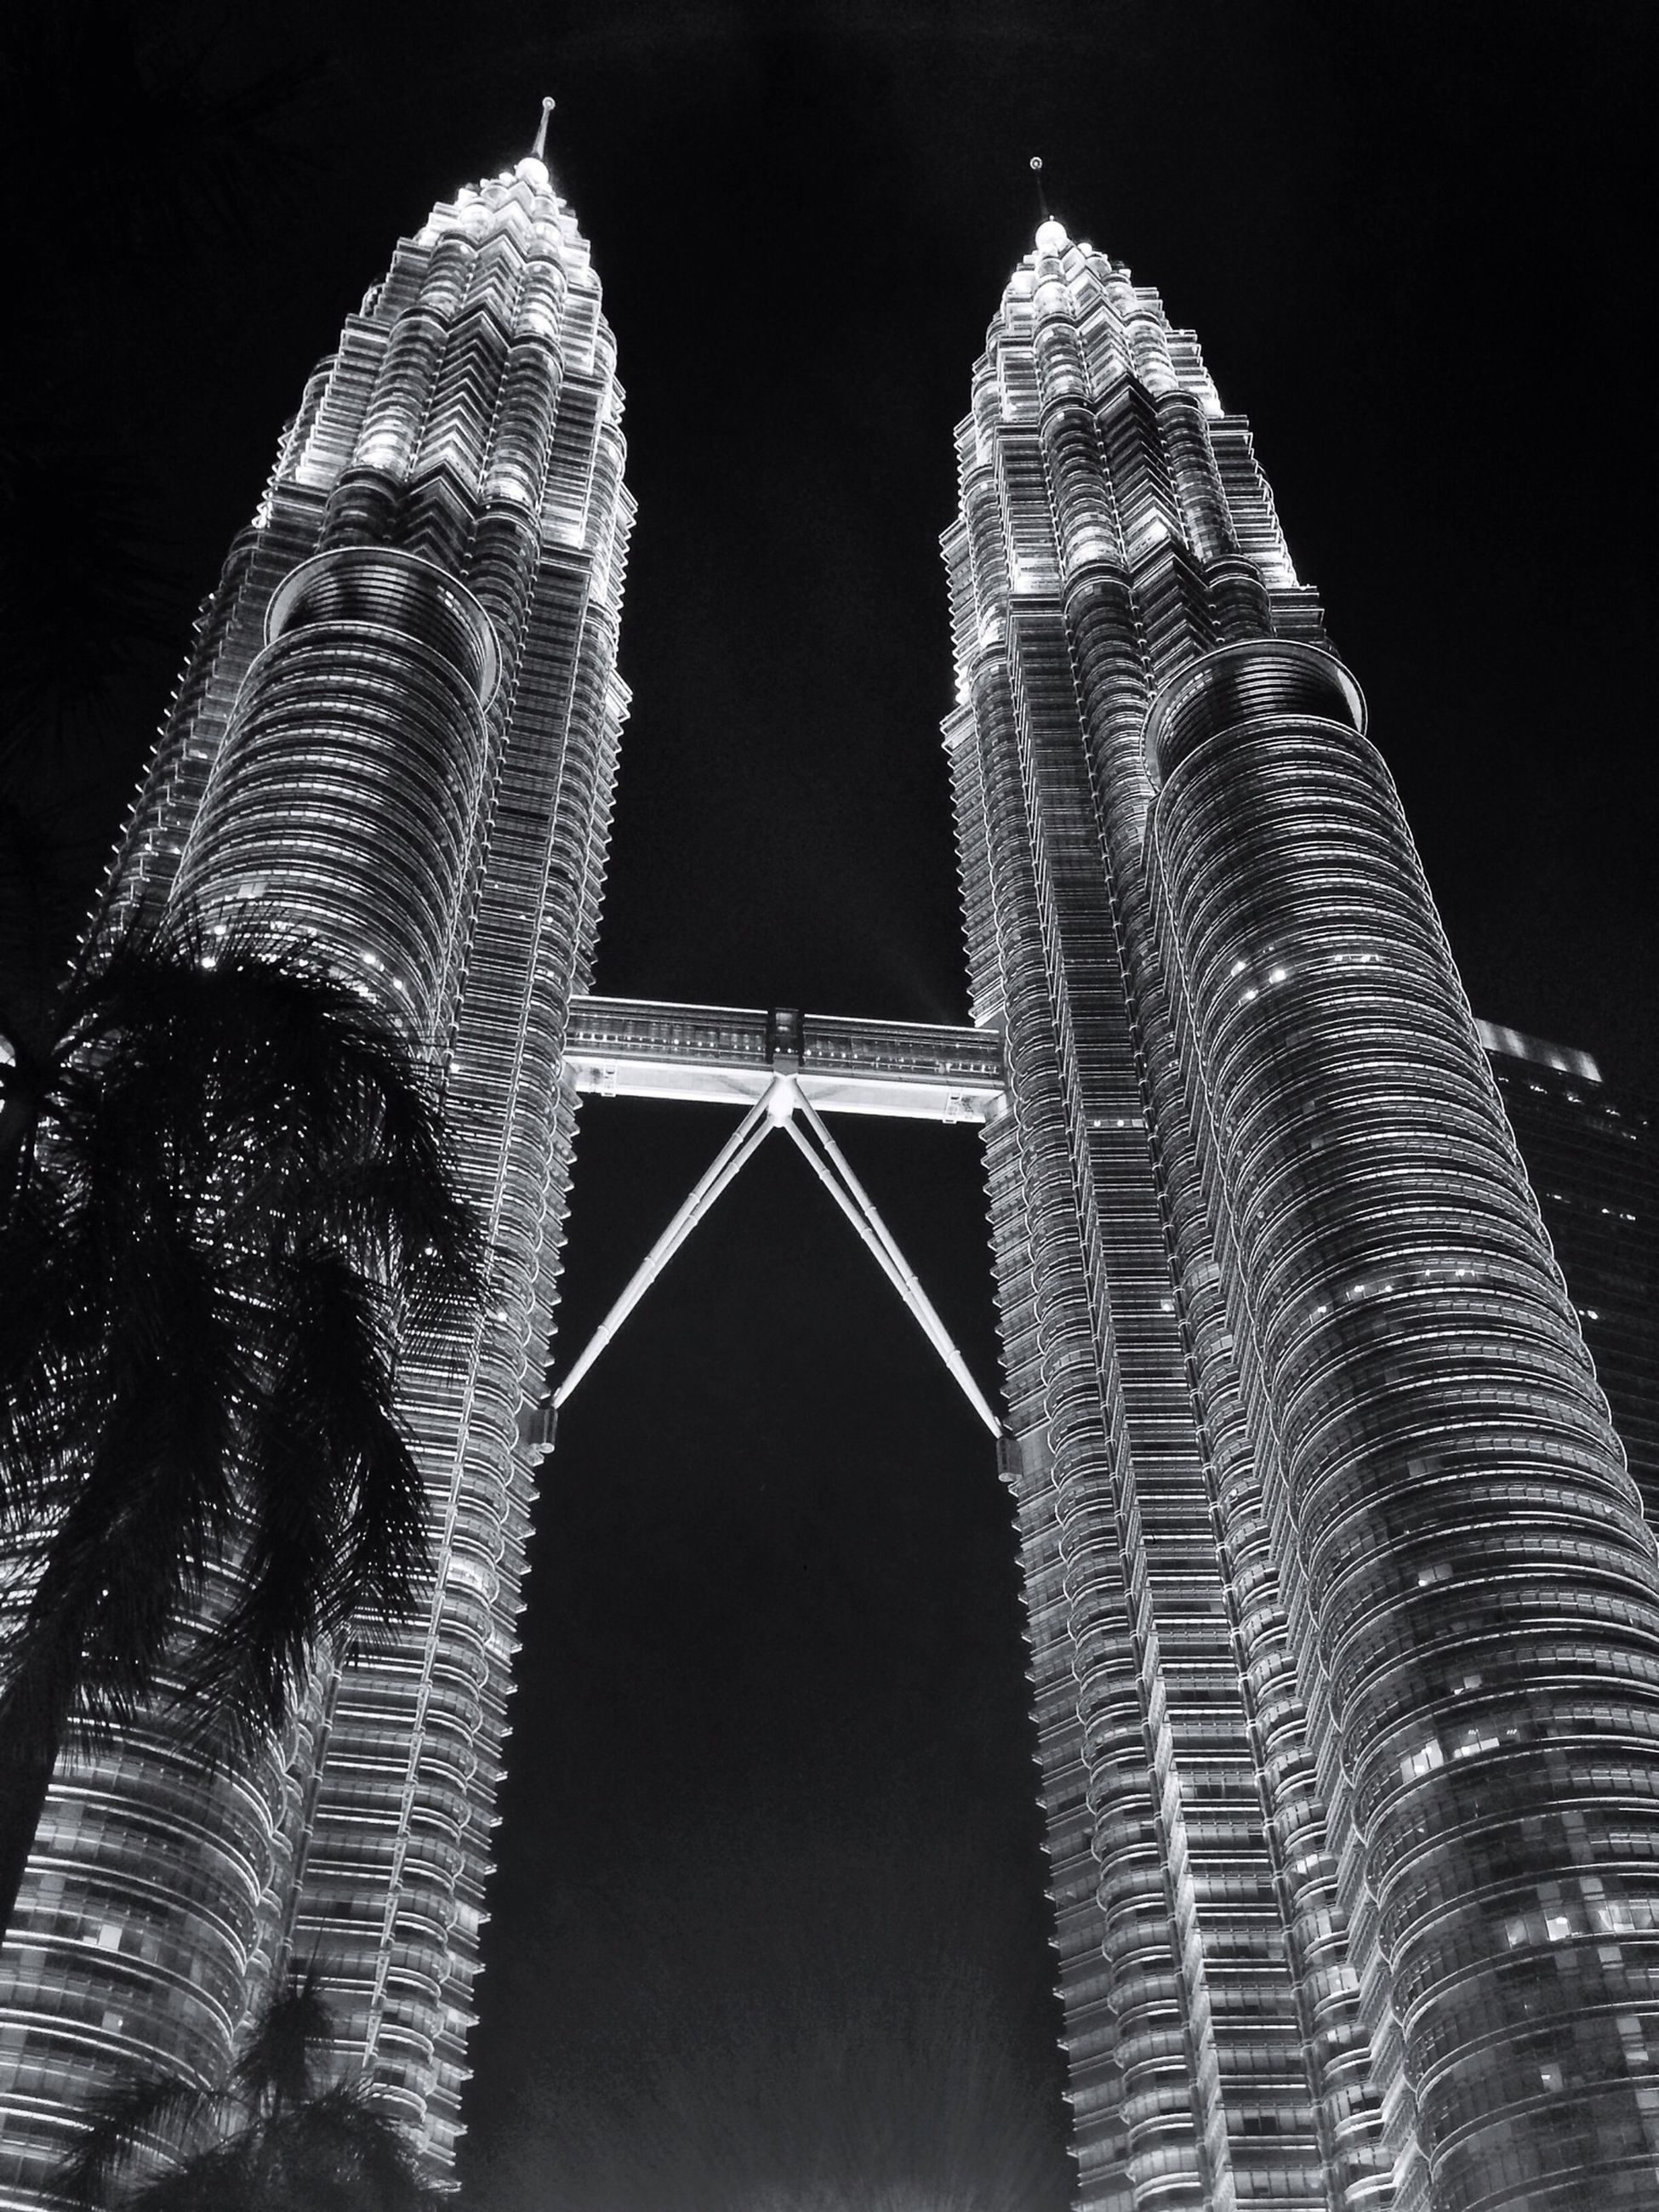 architecture, built structure, famous place, building exterior, international landmark, low angle view, travel destinations, night, capital cities, tourism, tall - high, travel, city, tower, clear sky, modern, skyscraper, reflection, sky, outdoors